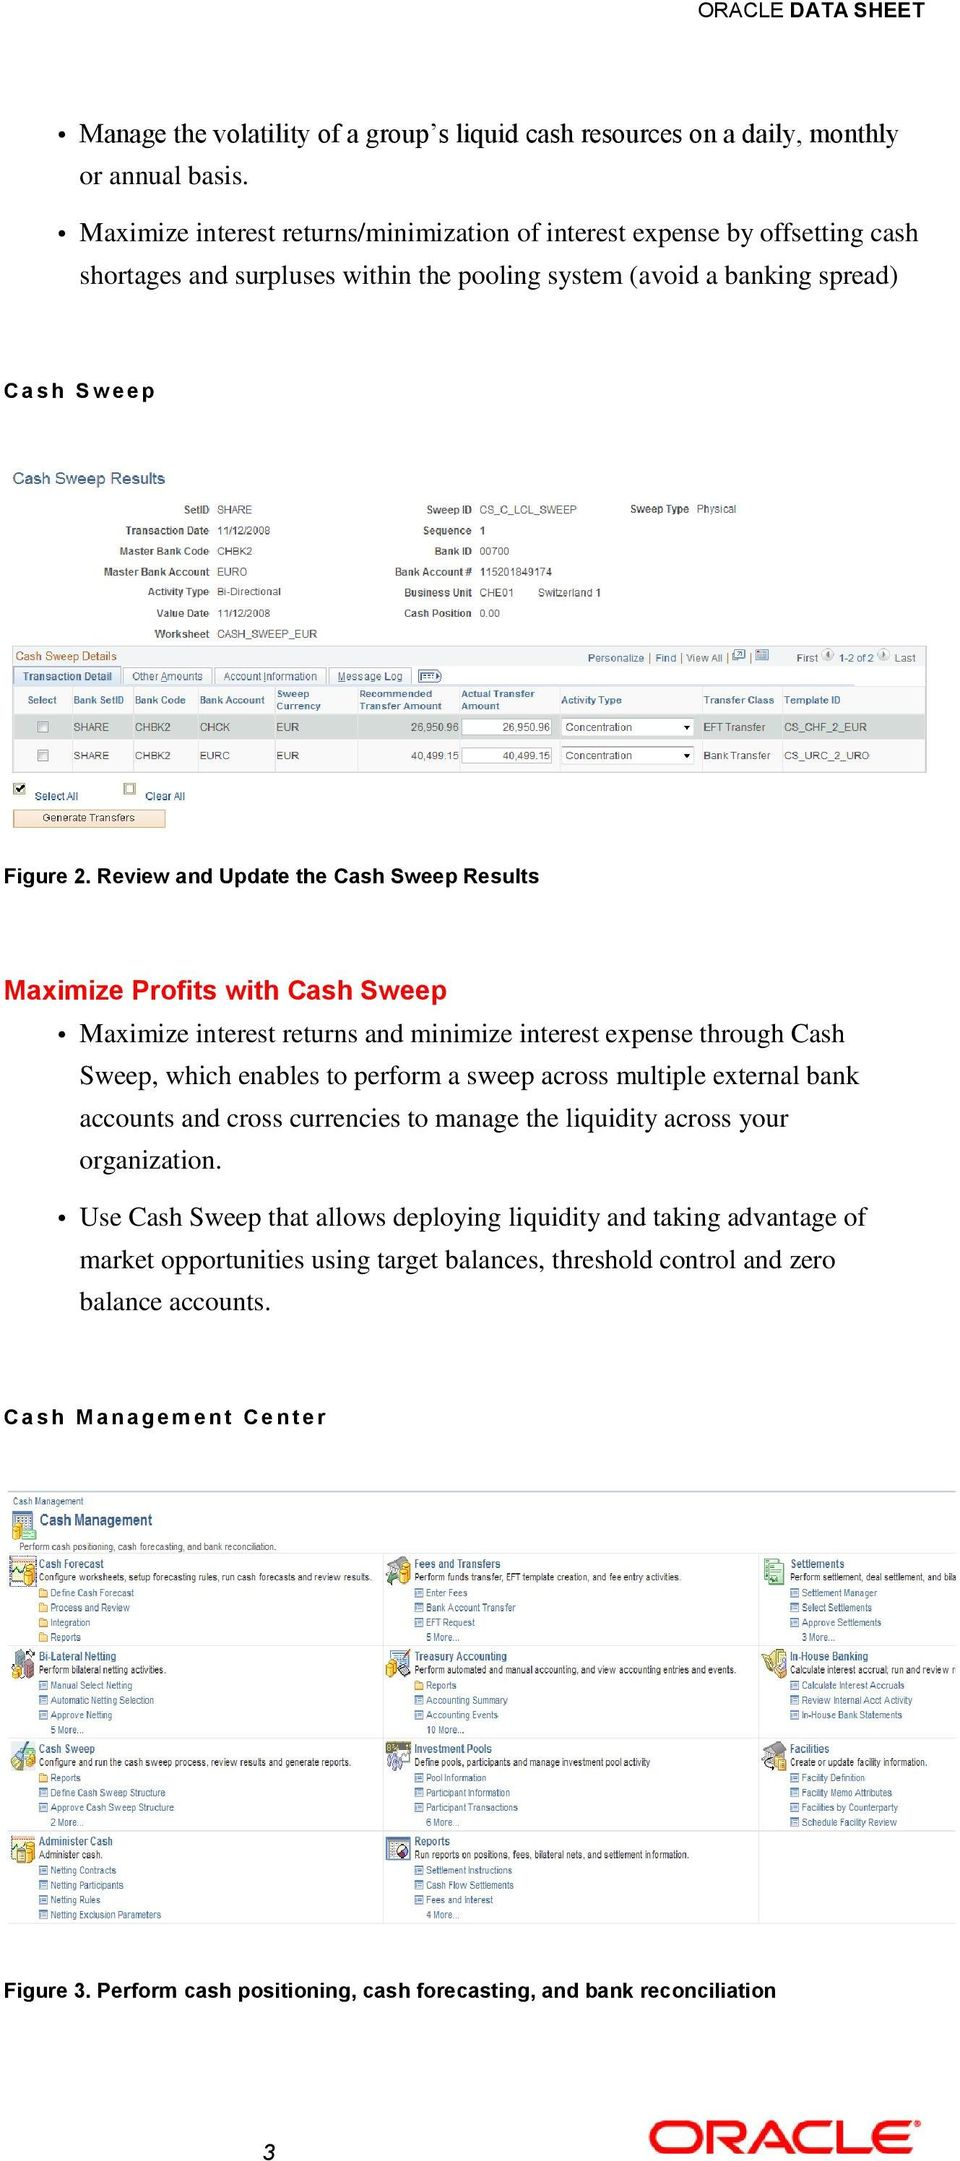 Review and Update the Cash Sweep Results Maximize Profits with Cash Sweep Maximize interest returns and minimize interest expense through Cash Sweep, which enables to perform a sweep across multiple